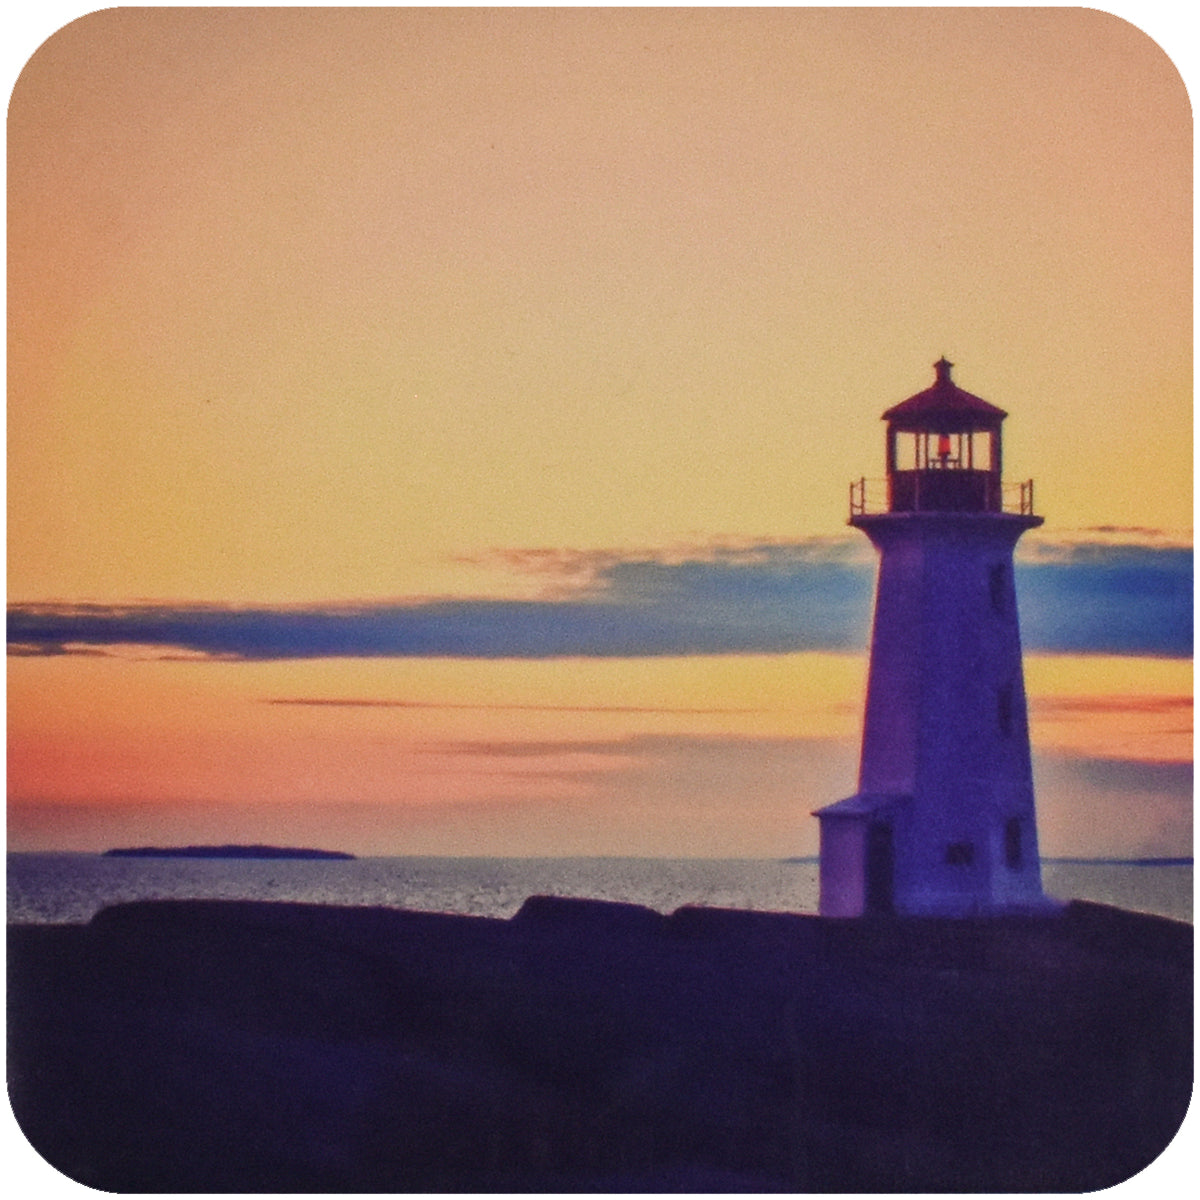 Cove Light Lighthouse Coaster - Wear the Wonder